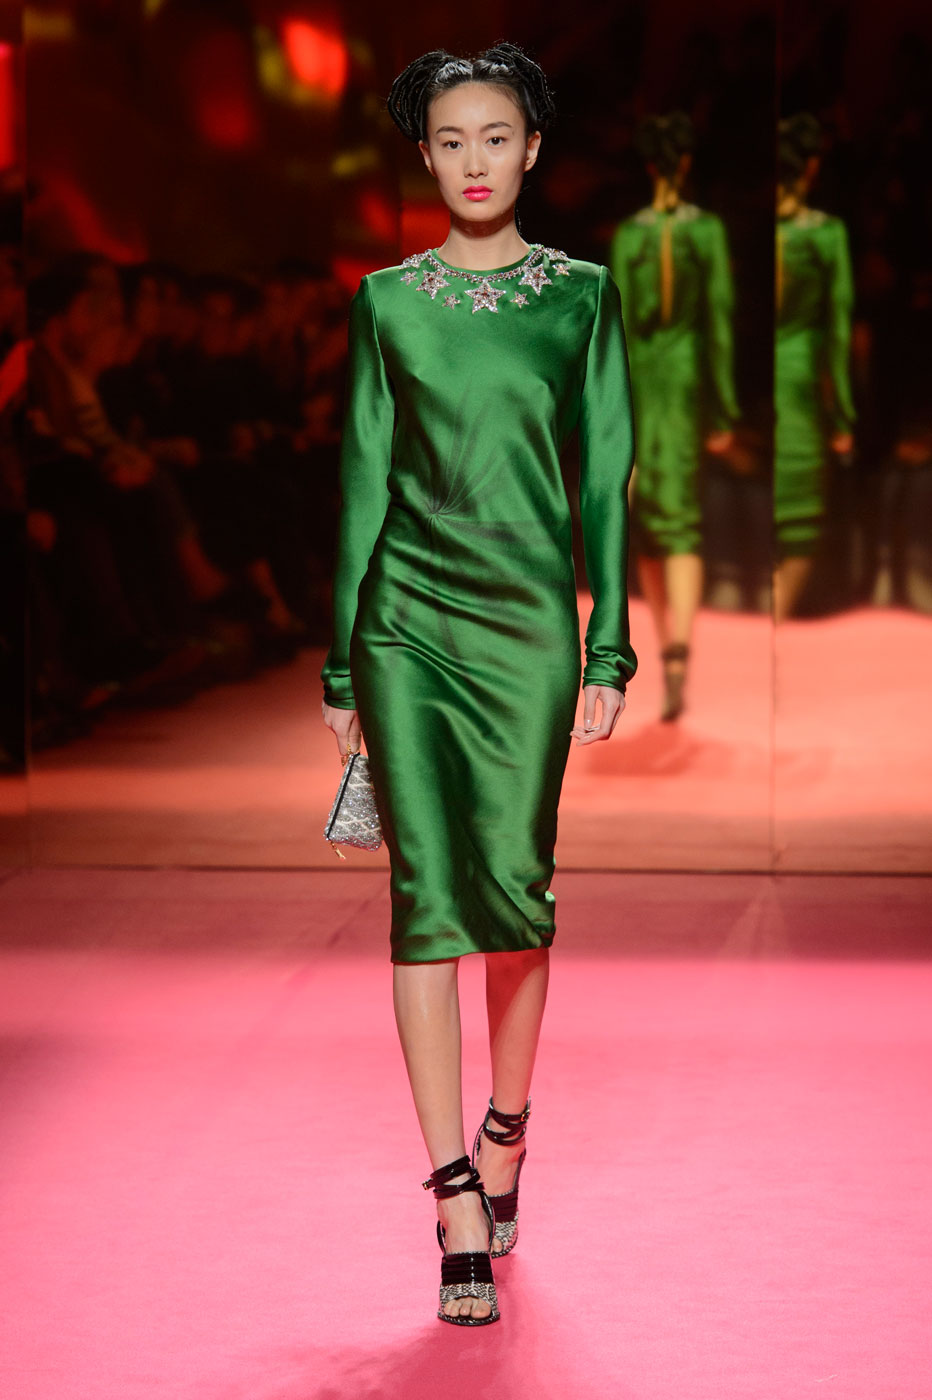 Schiaparelli-fashion-runway-show-haute-couture-paris-spring-summer-2015-the-impression-26